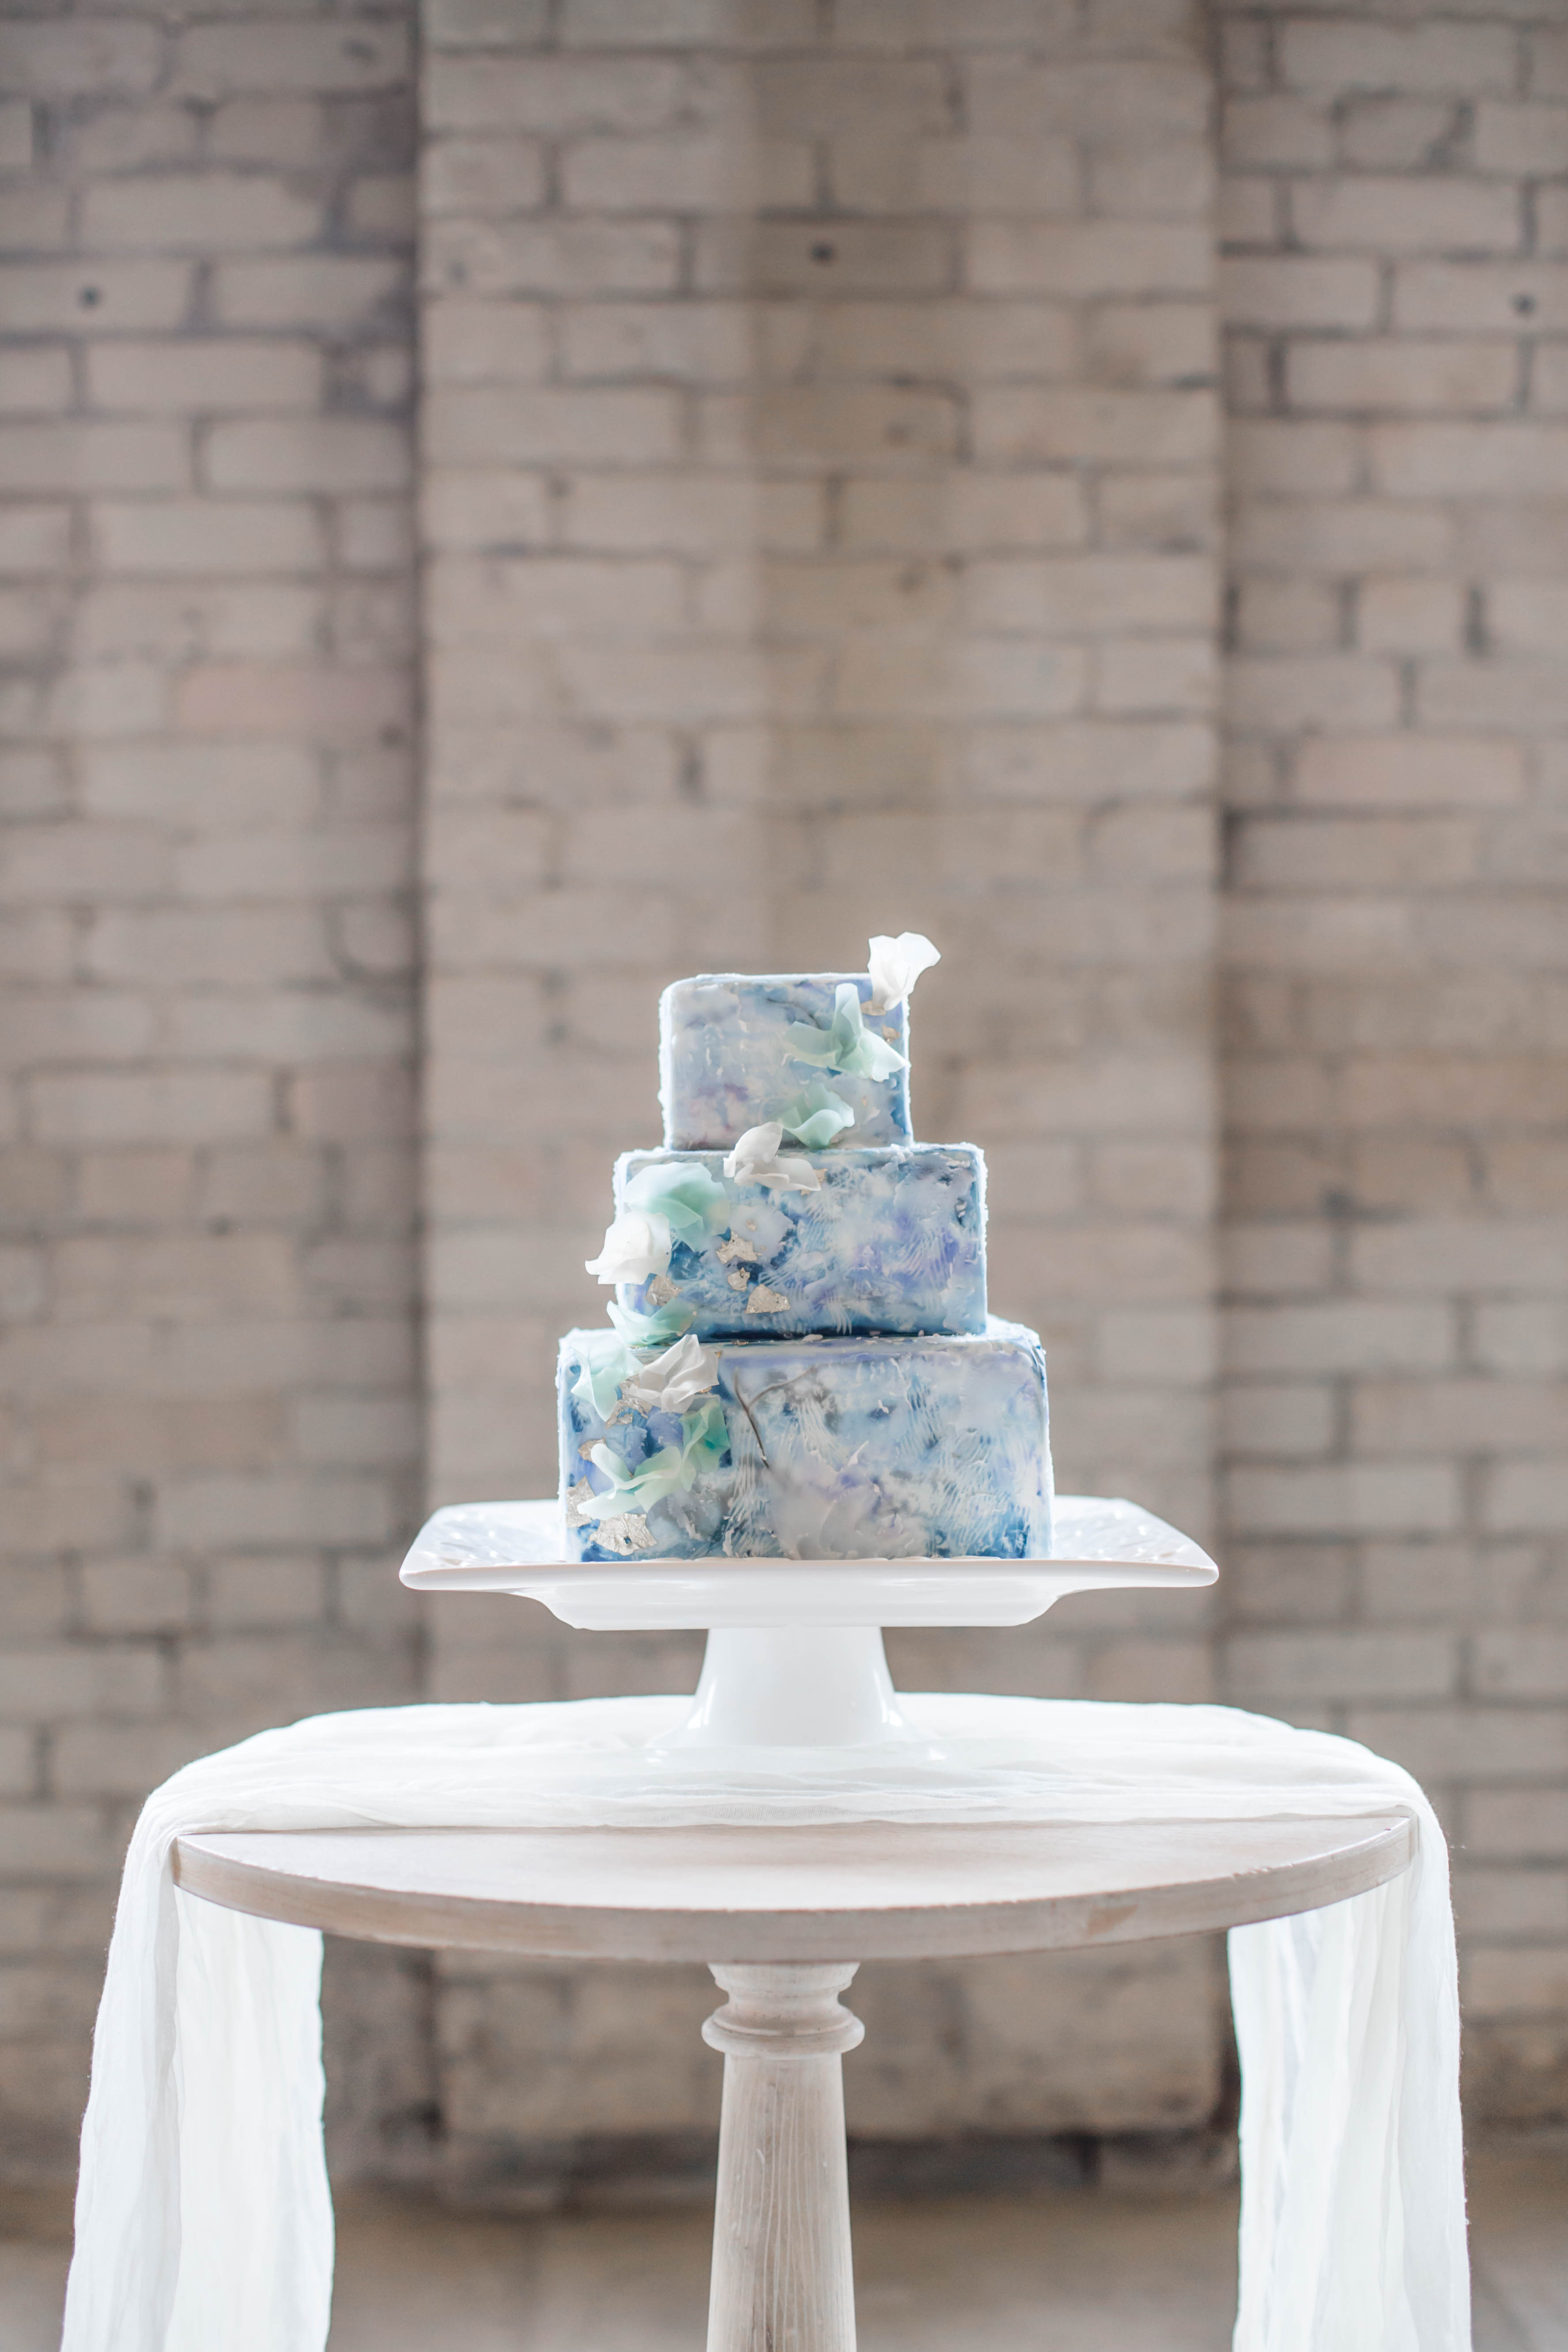 Baby Blue watercolor fondant wedding cake